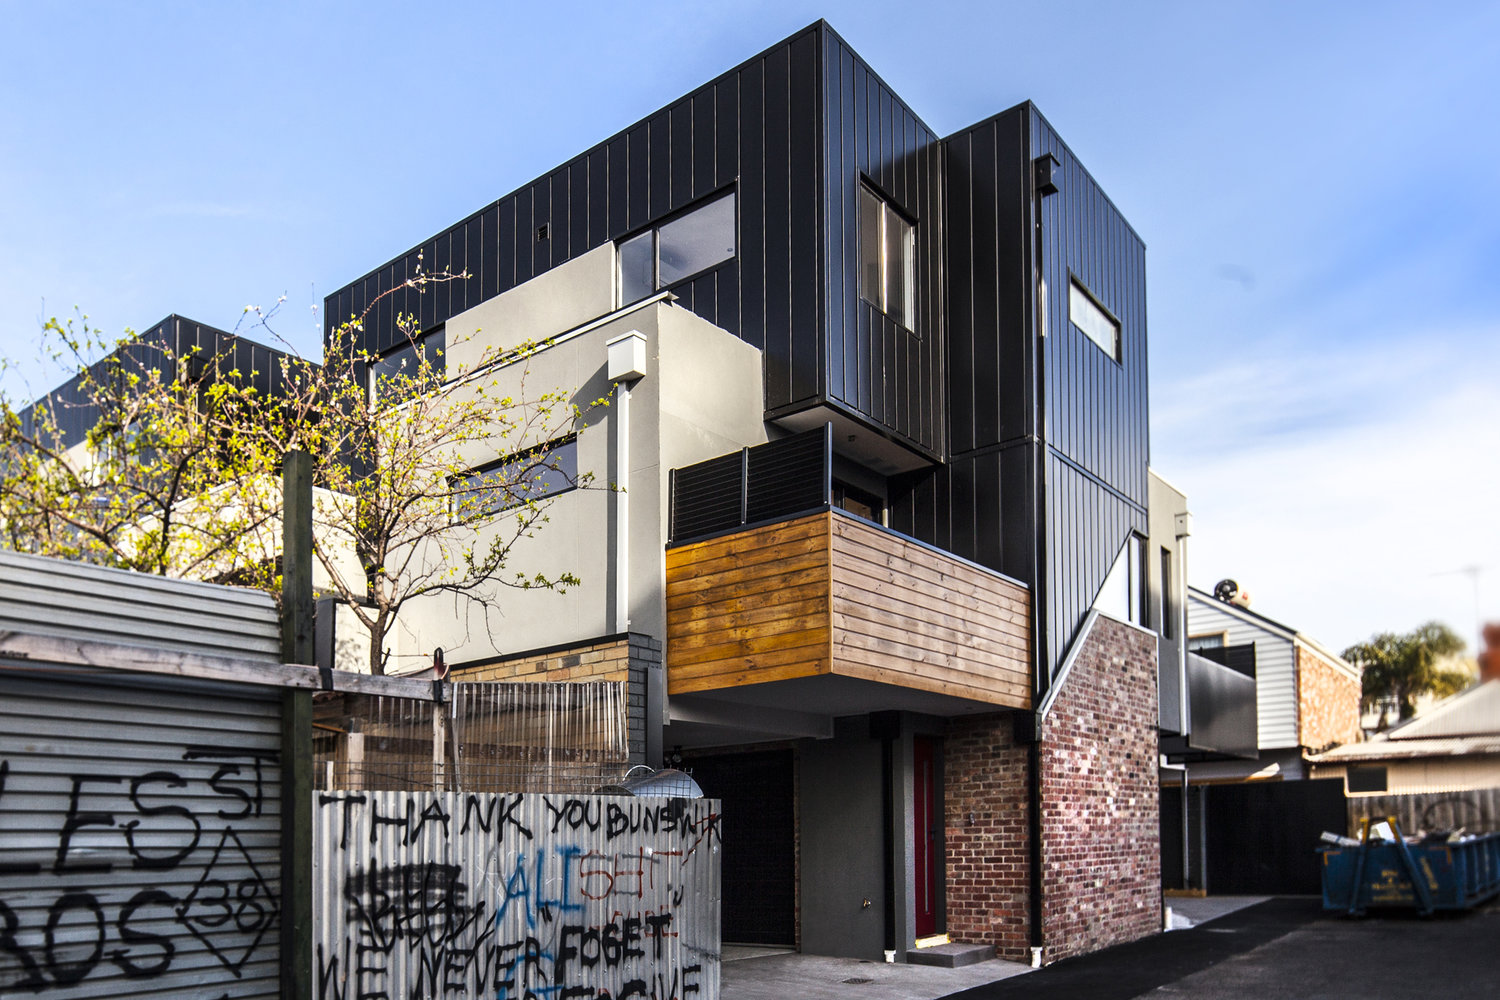 charles-brunswick_archsign-+townhouse+design+-+melbourne.jpg